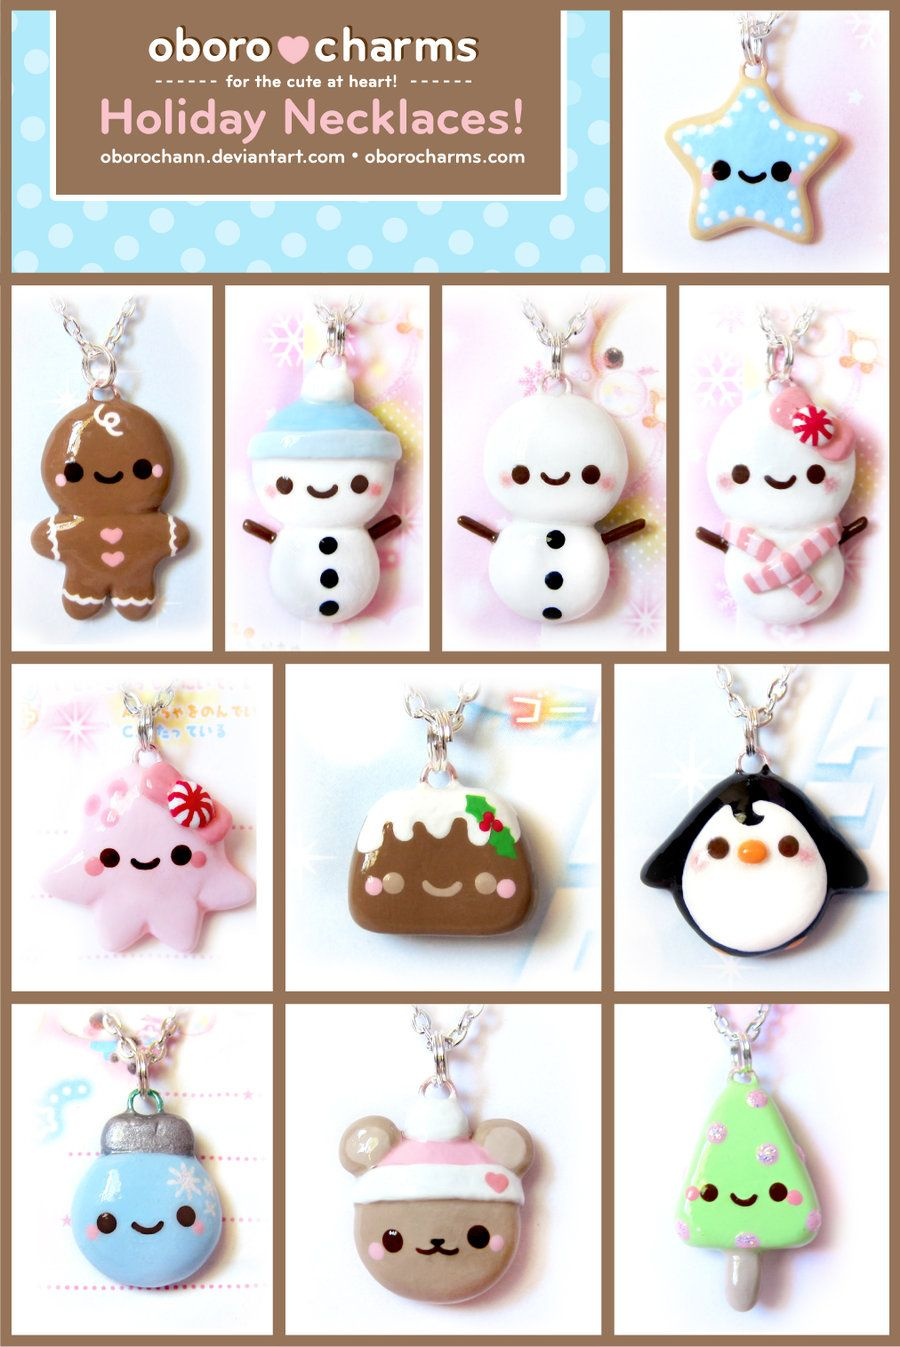 Holiday Necklaces By Oborochann On Deviantart Proyectos De Arcilla Polimérica Manualidades Arcilla De Navidad